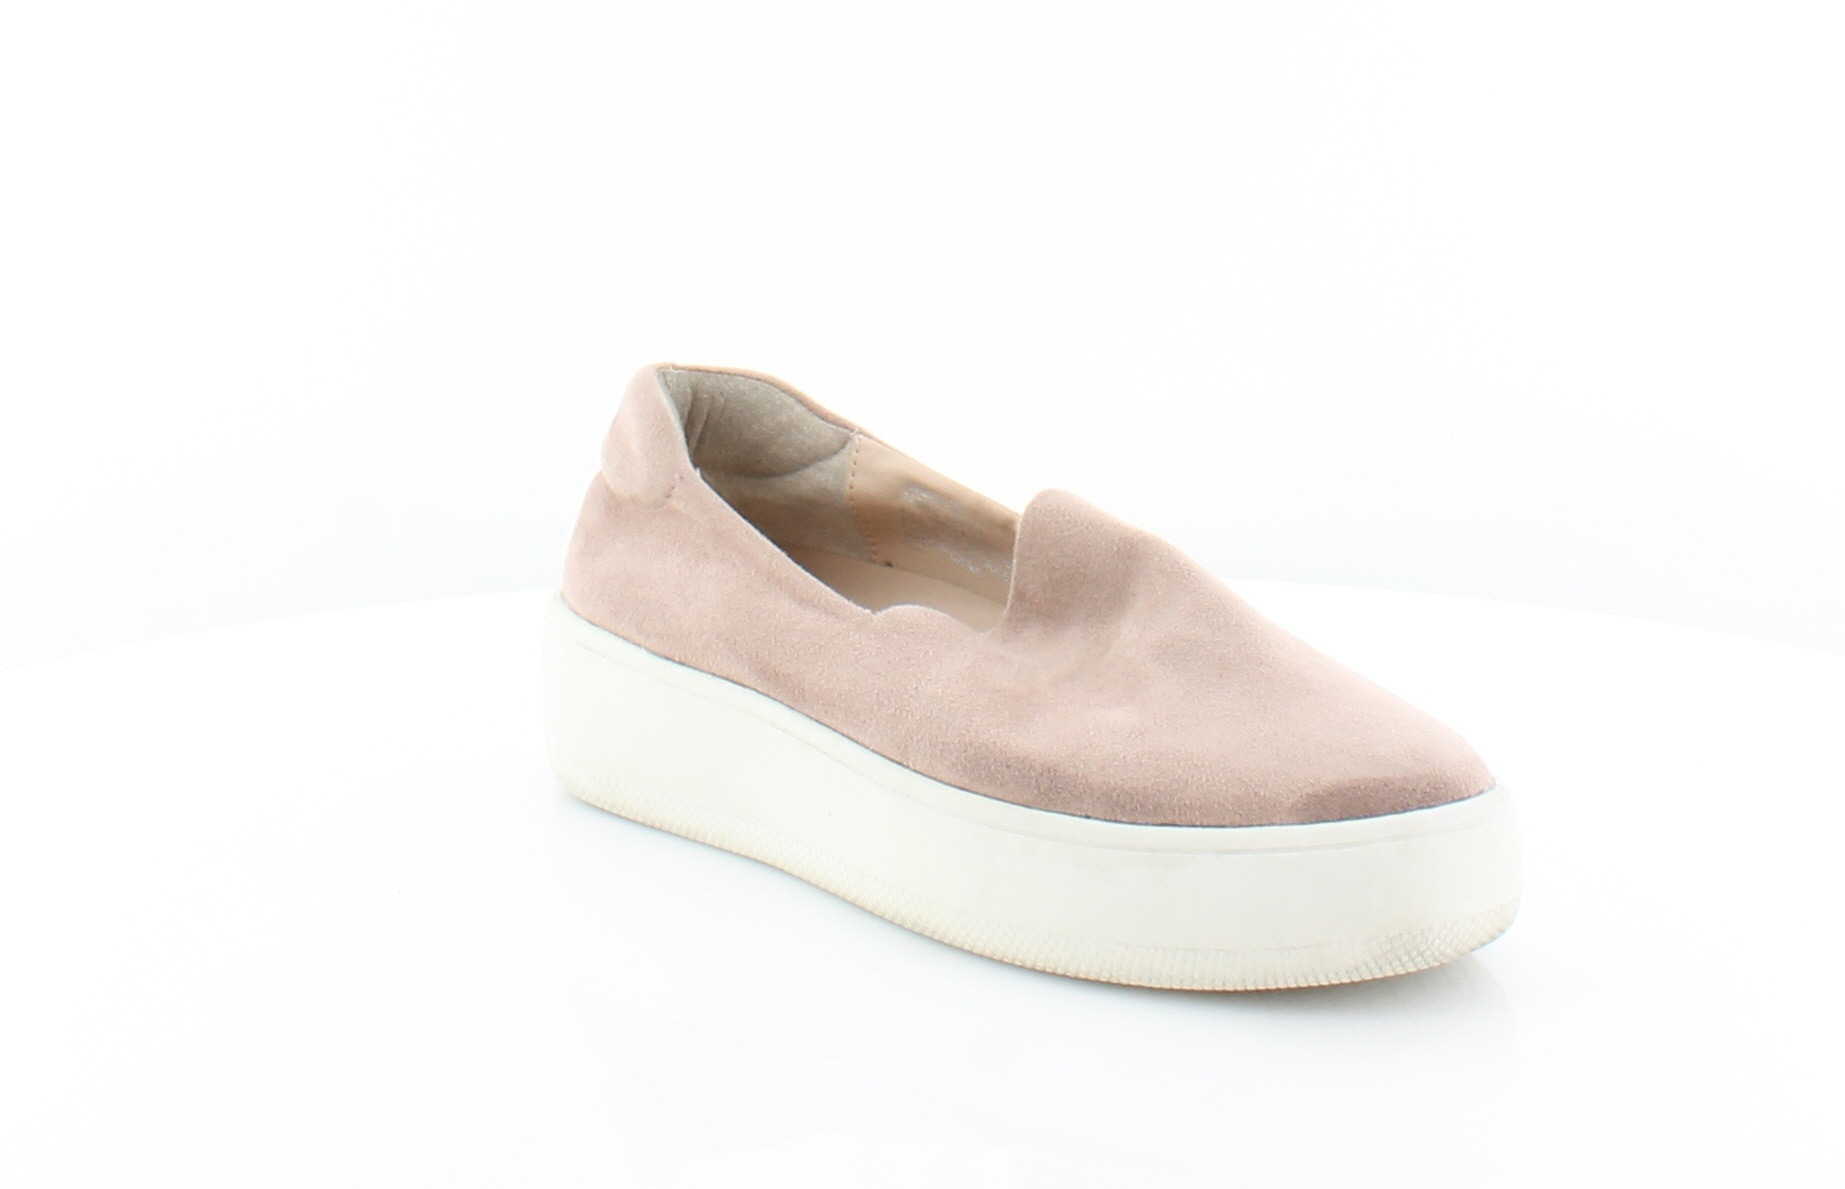 1c08fec3a85 Steven by Steve Madden Hilda Pink Womens Shoes 6.5 M Fashion Sneakers MSRP   69